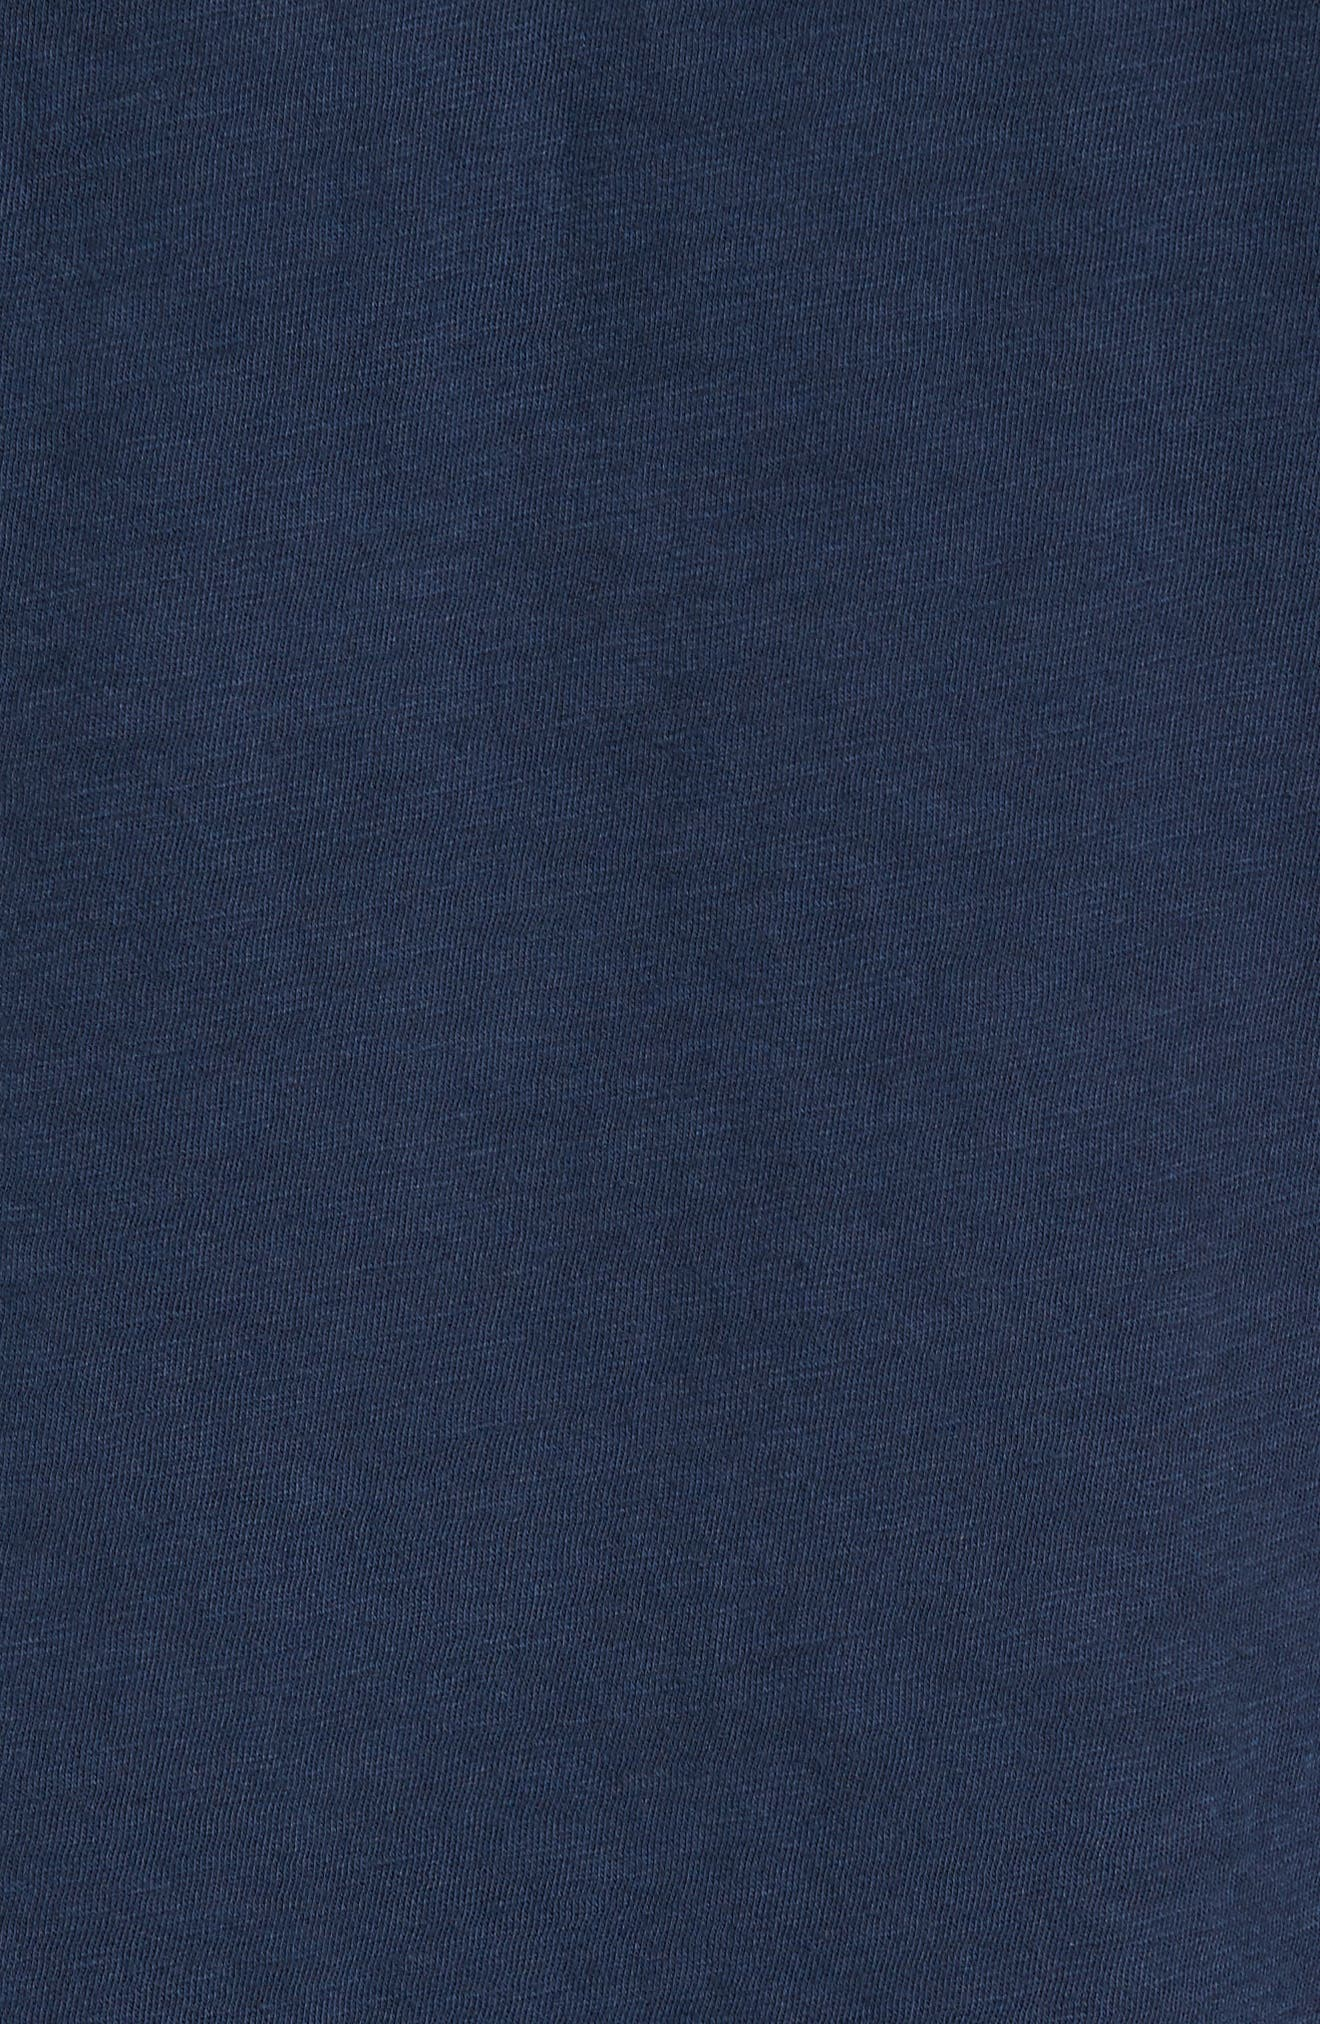 Chase Classic Crewneck T-Shirt,                             Alternate thumbnail 6, color,                             Navy